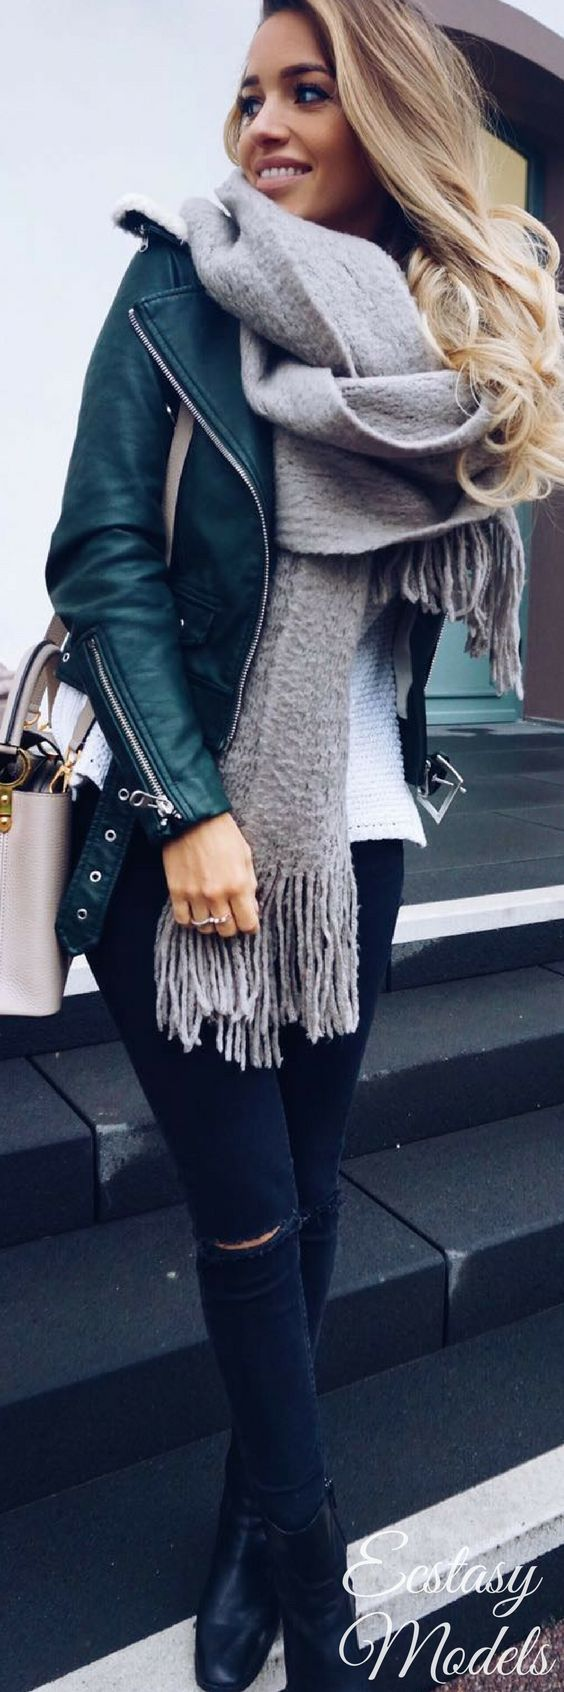 best 25+ women's winter fashion ideas on pinterest | autumn